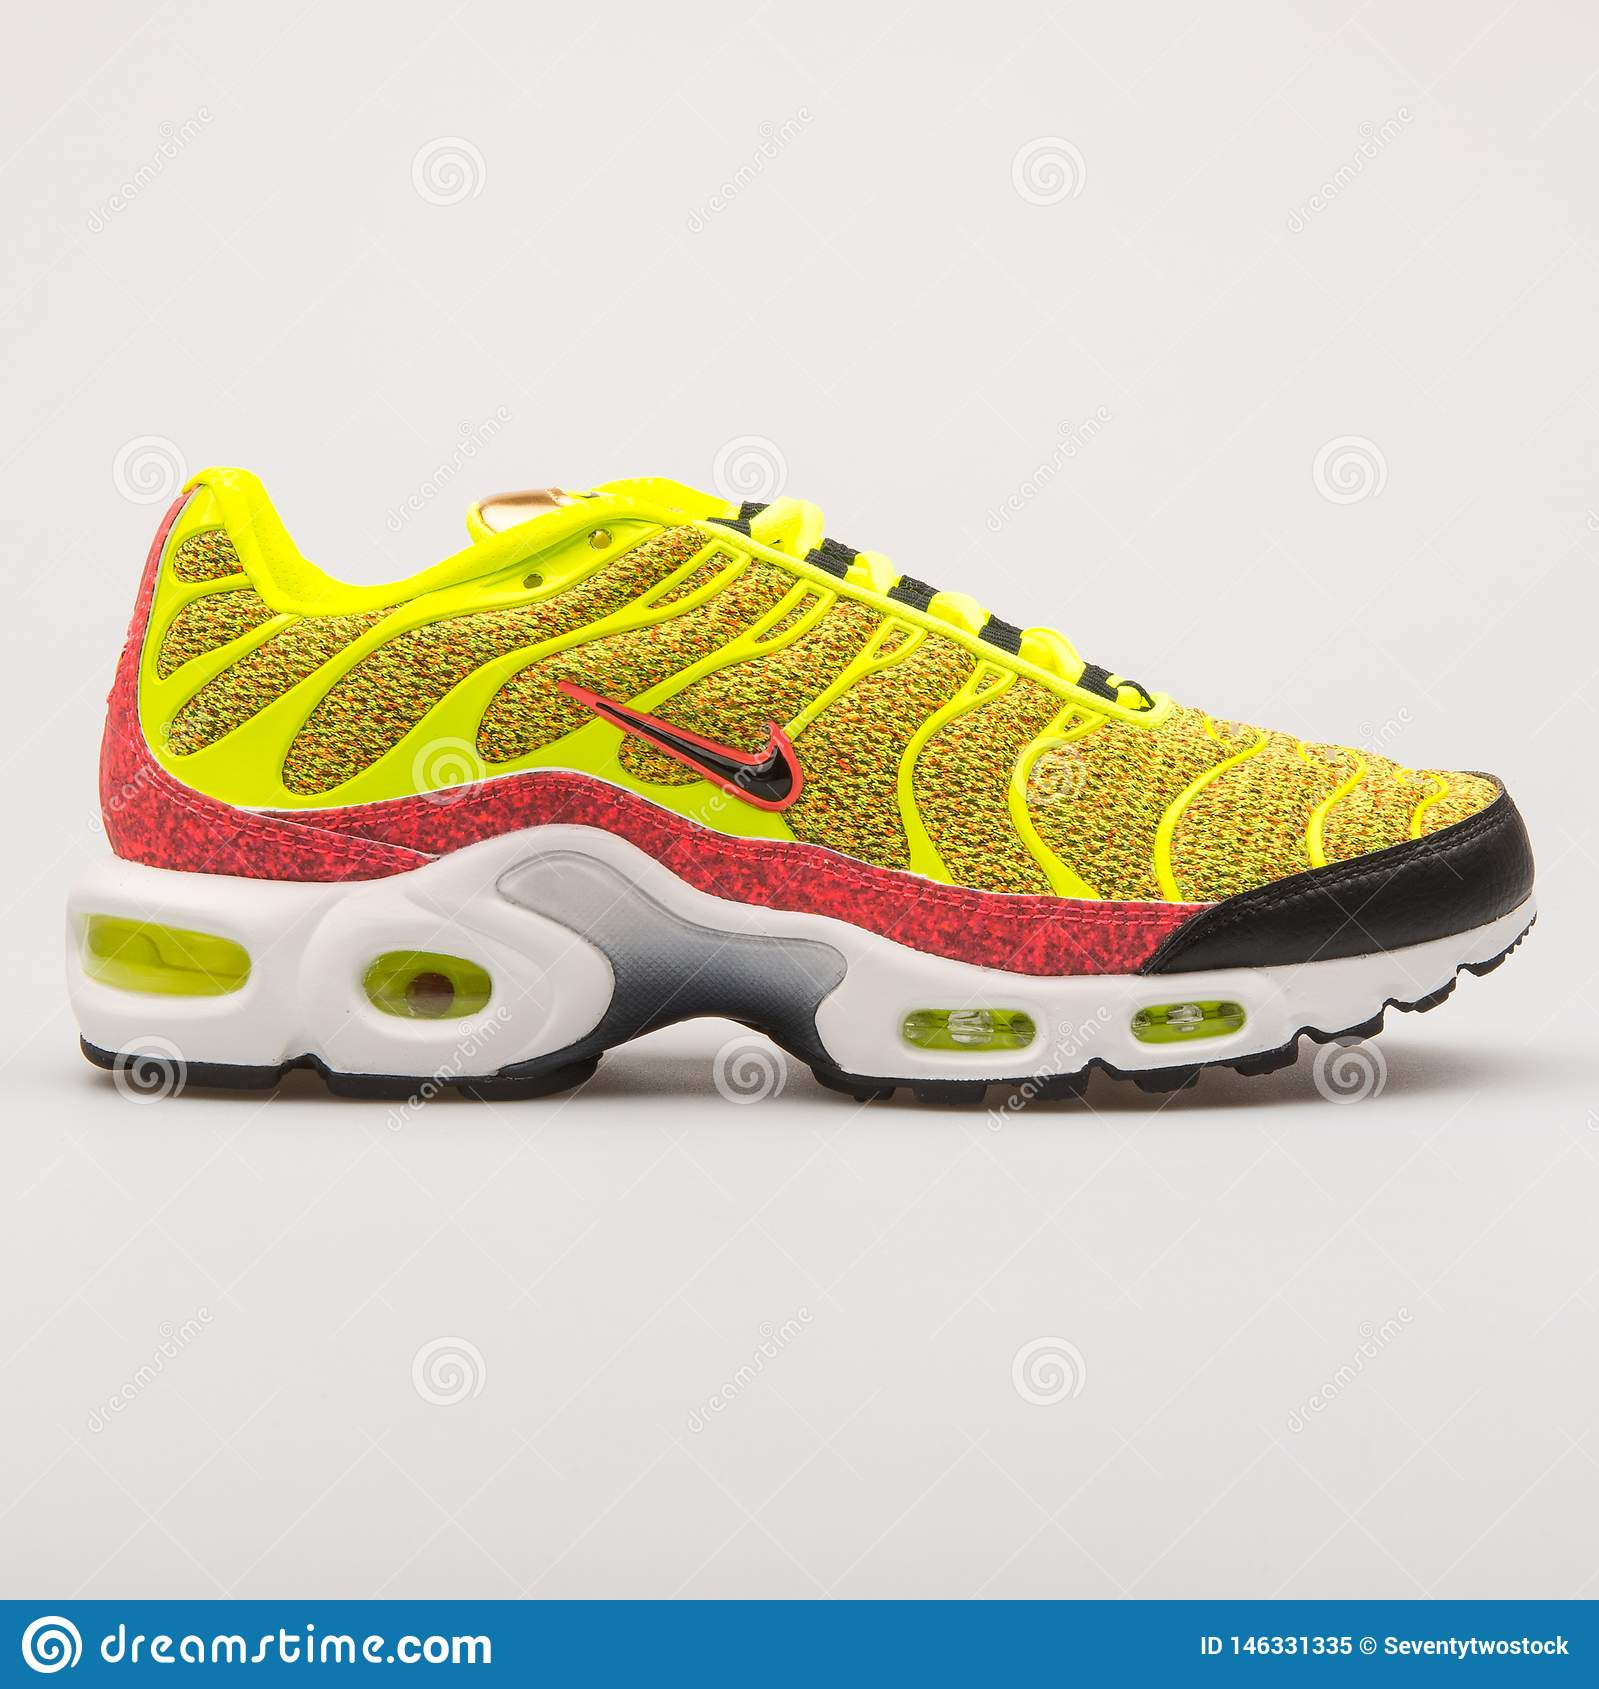 low priced 3305f fc89f Nike Air Max Plus SE Yellow Sneaker Editorial Image - Image ...